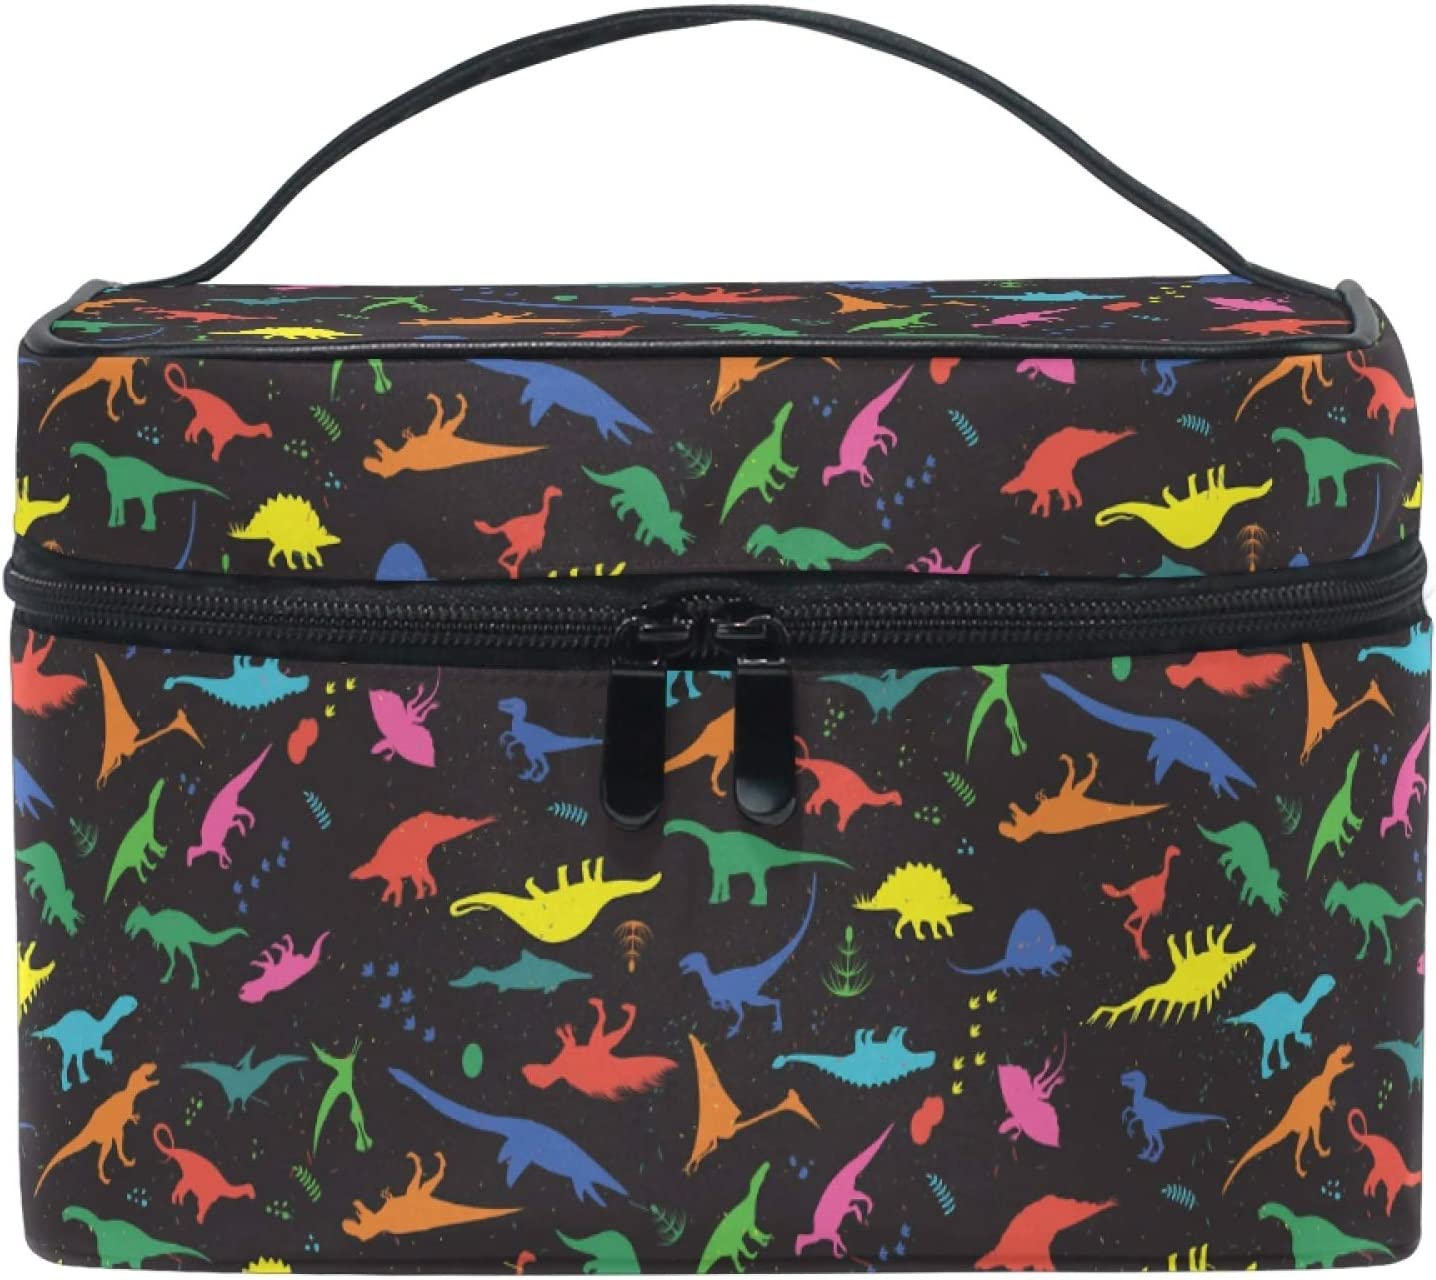 Makeup Bag Dinosaurs Travel Many popular brands Organizer Cosmetic Cases NEW before selling ☆